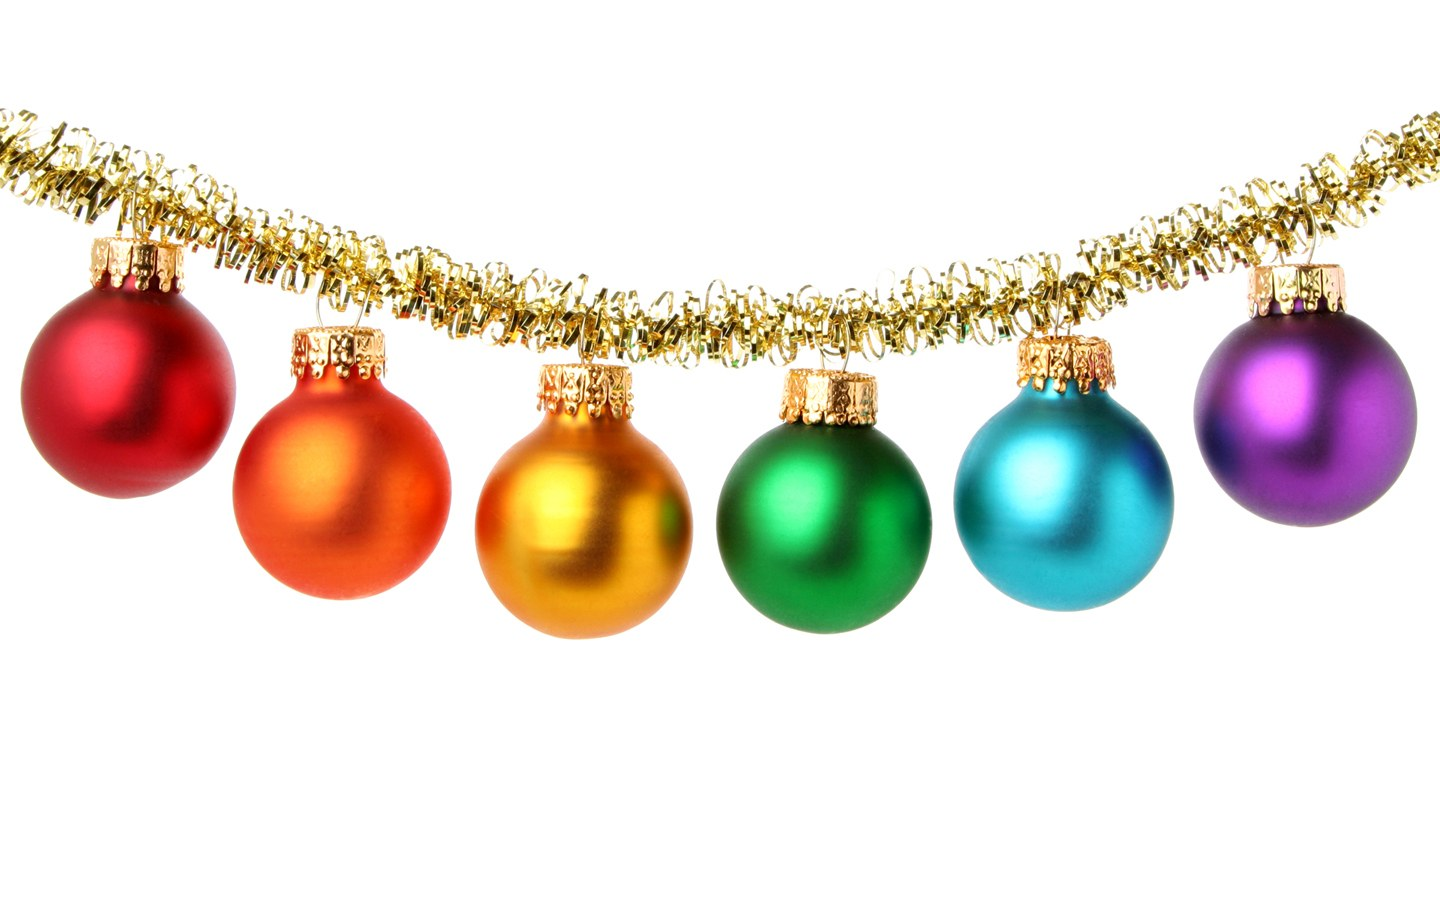 Colorful Christmas Balls.Colorful Christmas Balls Baubles Ornaments 1440 N2 Free Image